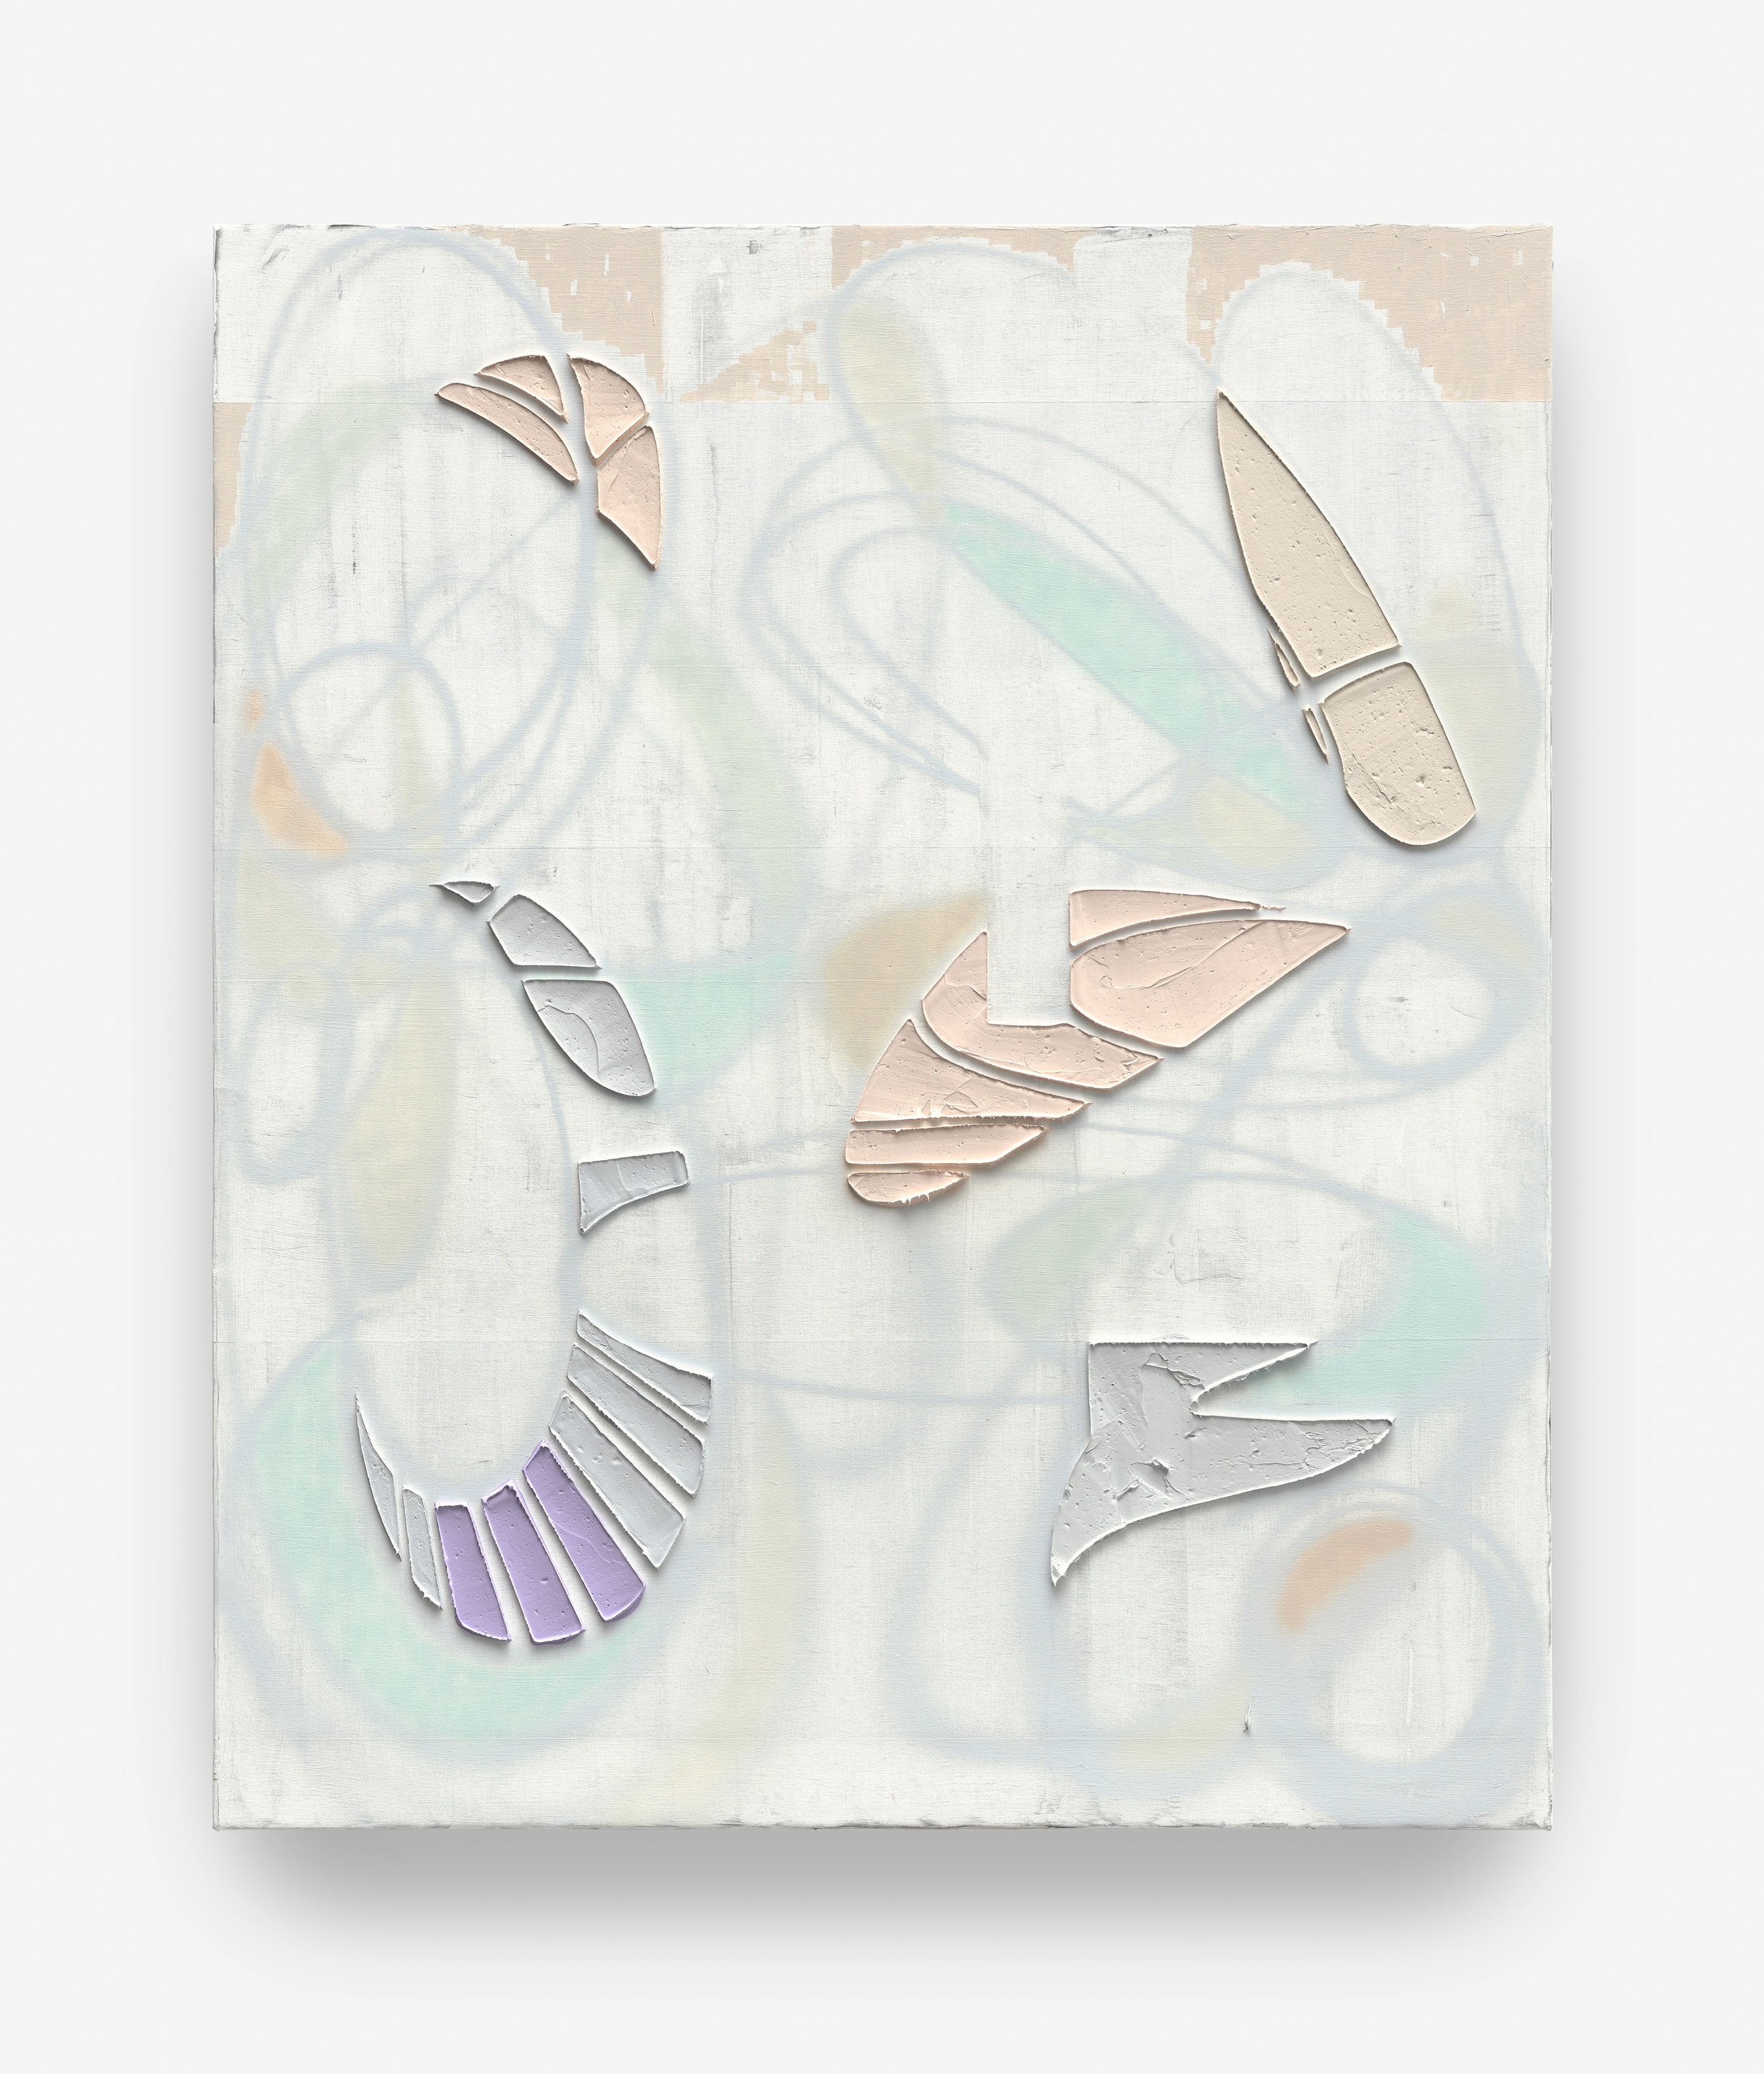 """KELTIE FERRIS. """"HIGH FADE"""" (2018). OIL AND ACRYLIC ON CANVAS IN THE ARTIST'S FRAME. TRIPTYCH; EACH PANEL: 72 X 60 1/8 IN. © KELTIE FERRIS. COURTESY OF THE ARTIST AND MITCHELL-INNES & NASH, NEW YORK"""